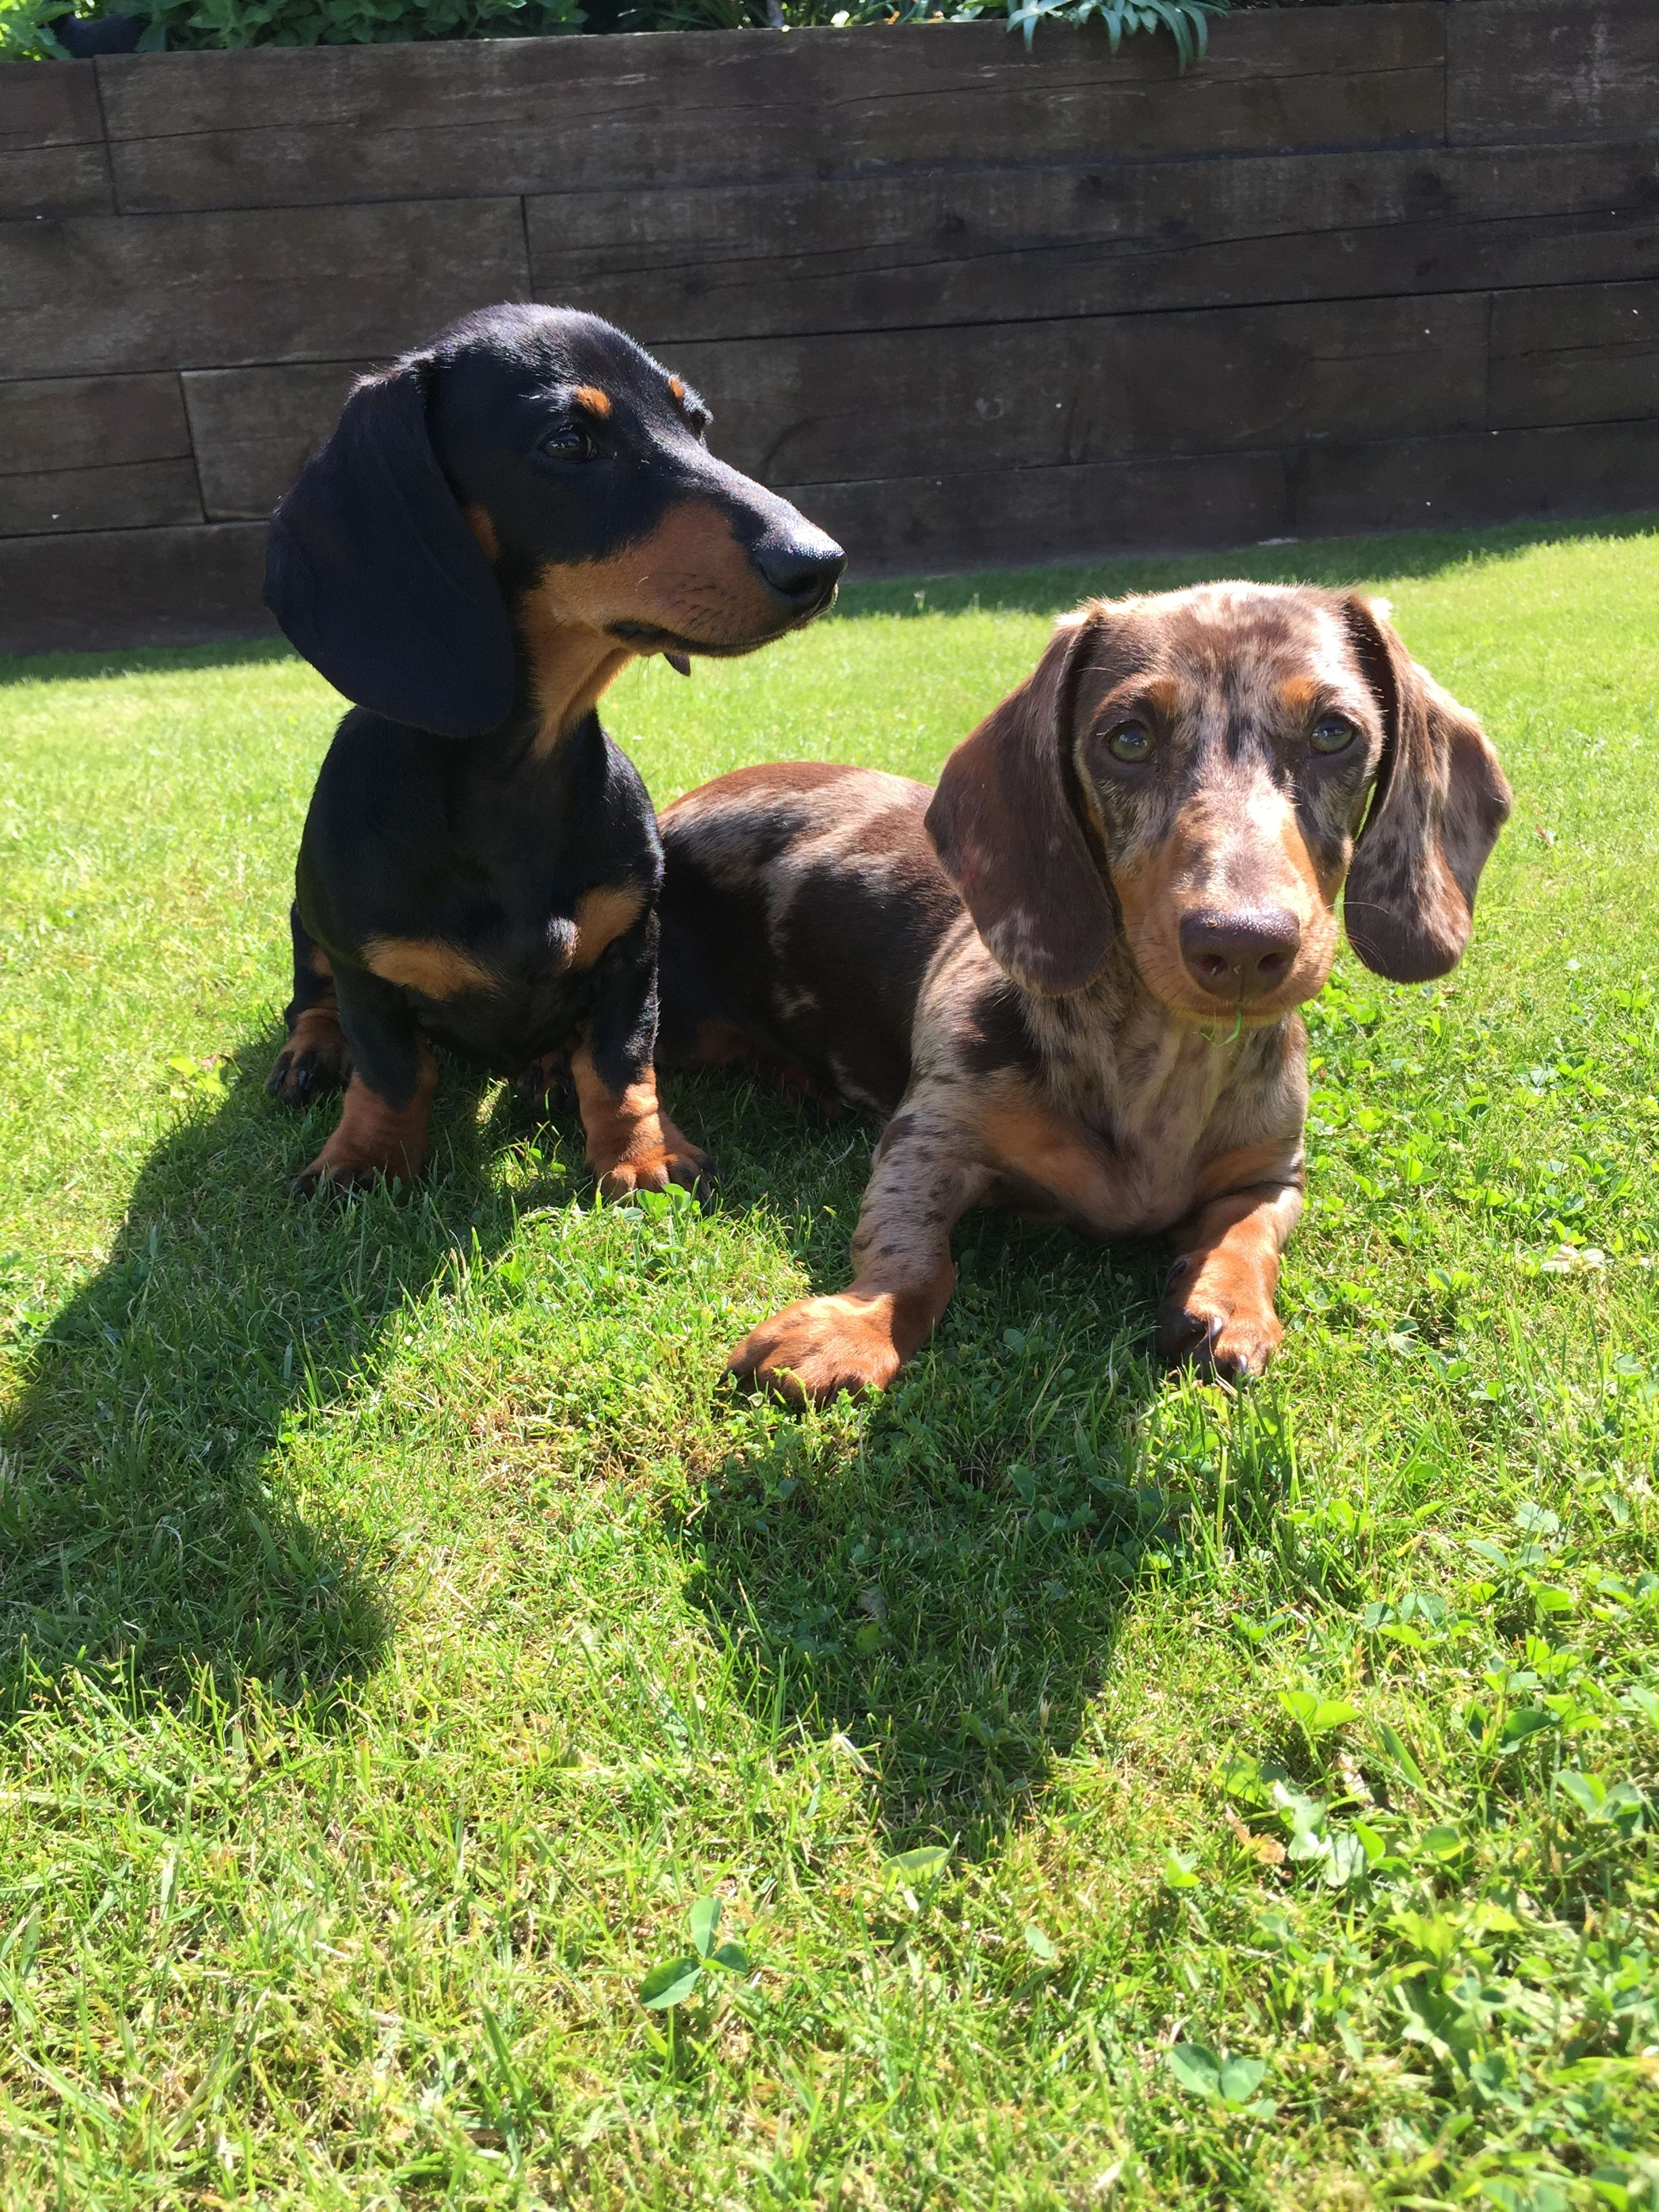 Pin By Gary Postlewait On Dachshund Puppies Miniature Dachshunds Dachshund Puppies Weiner Dog